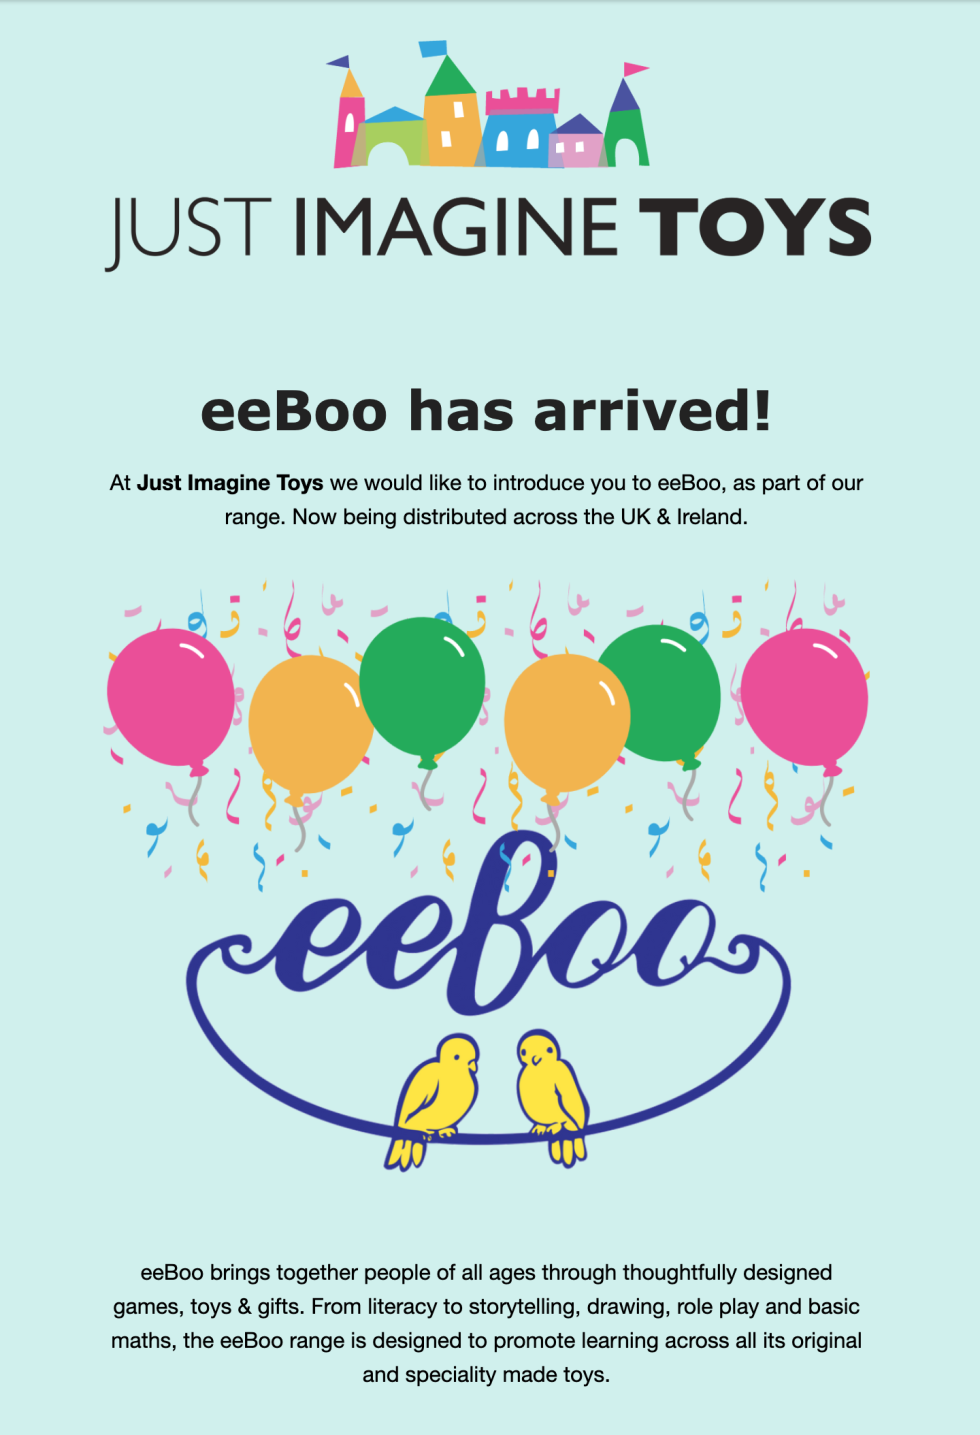 Product launch e-mail with the text just imagine toys